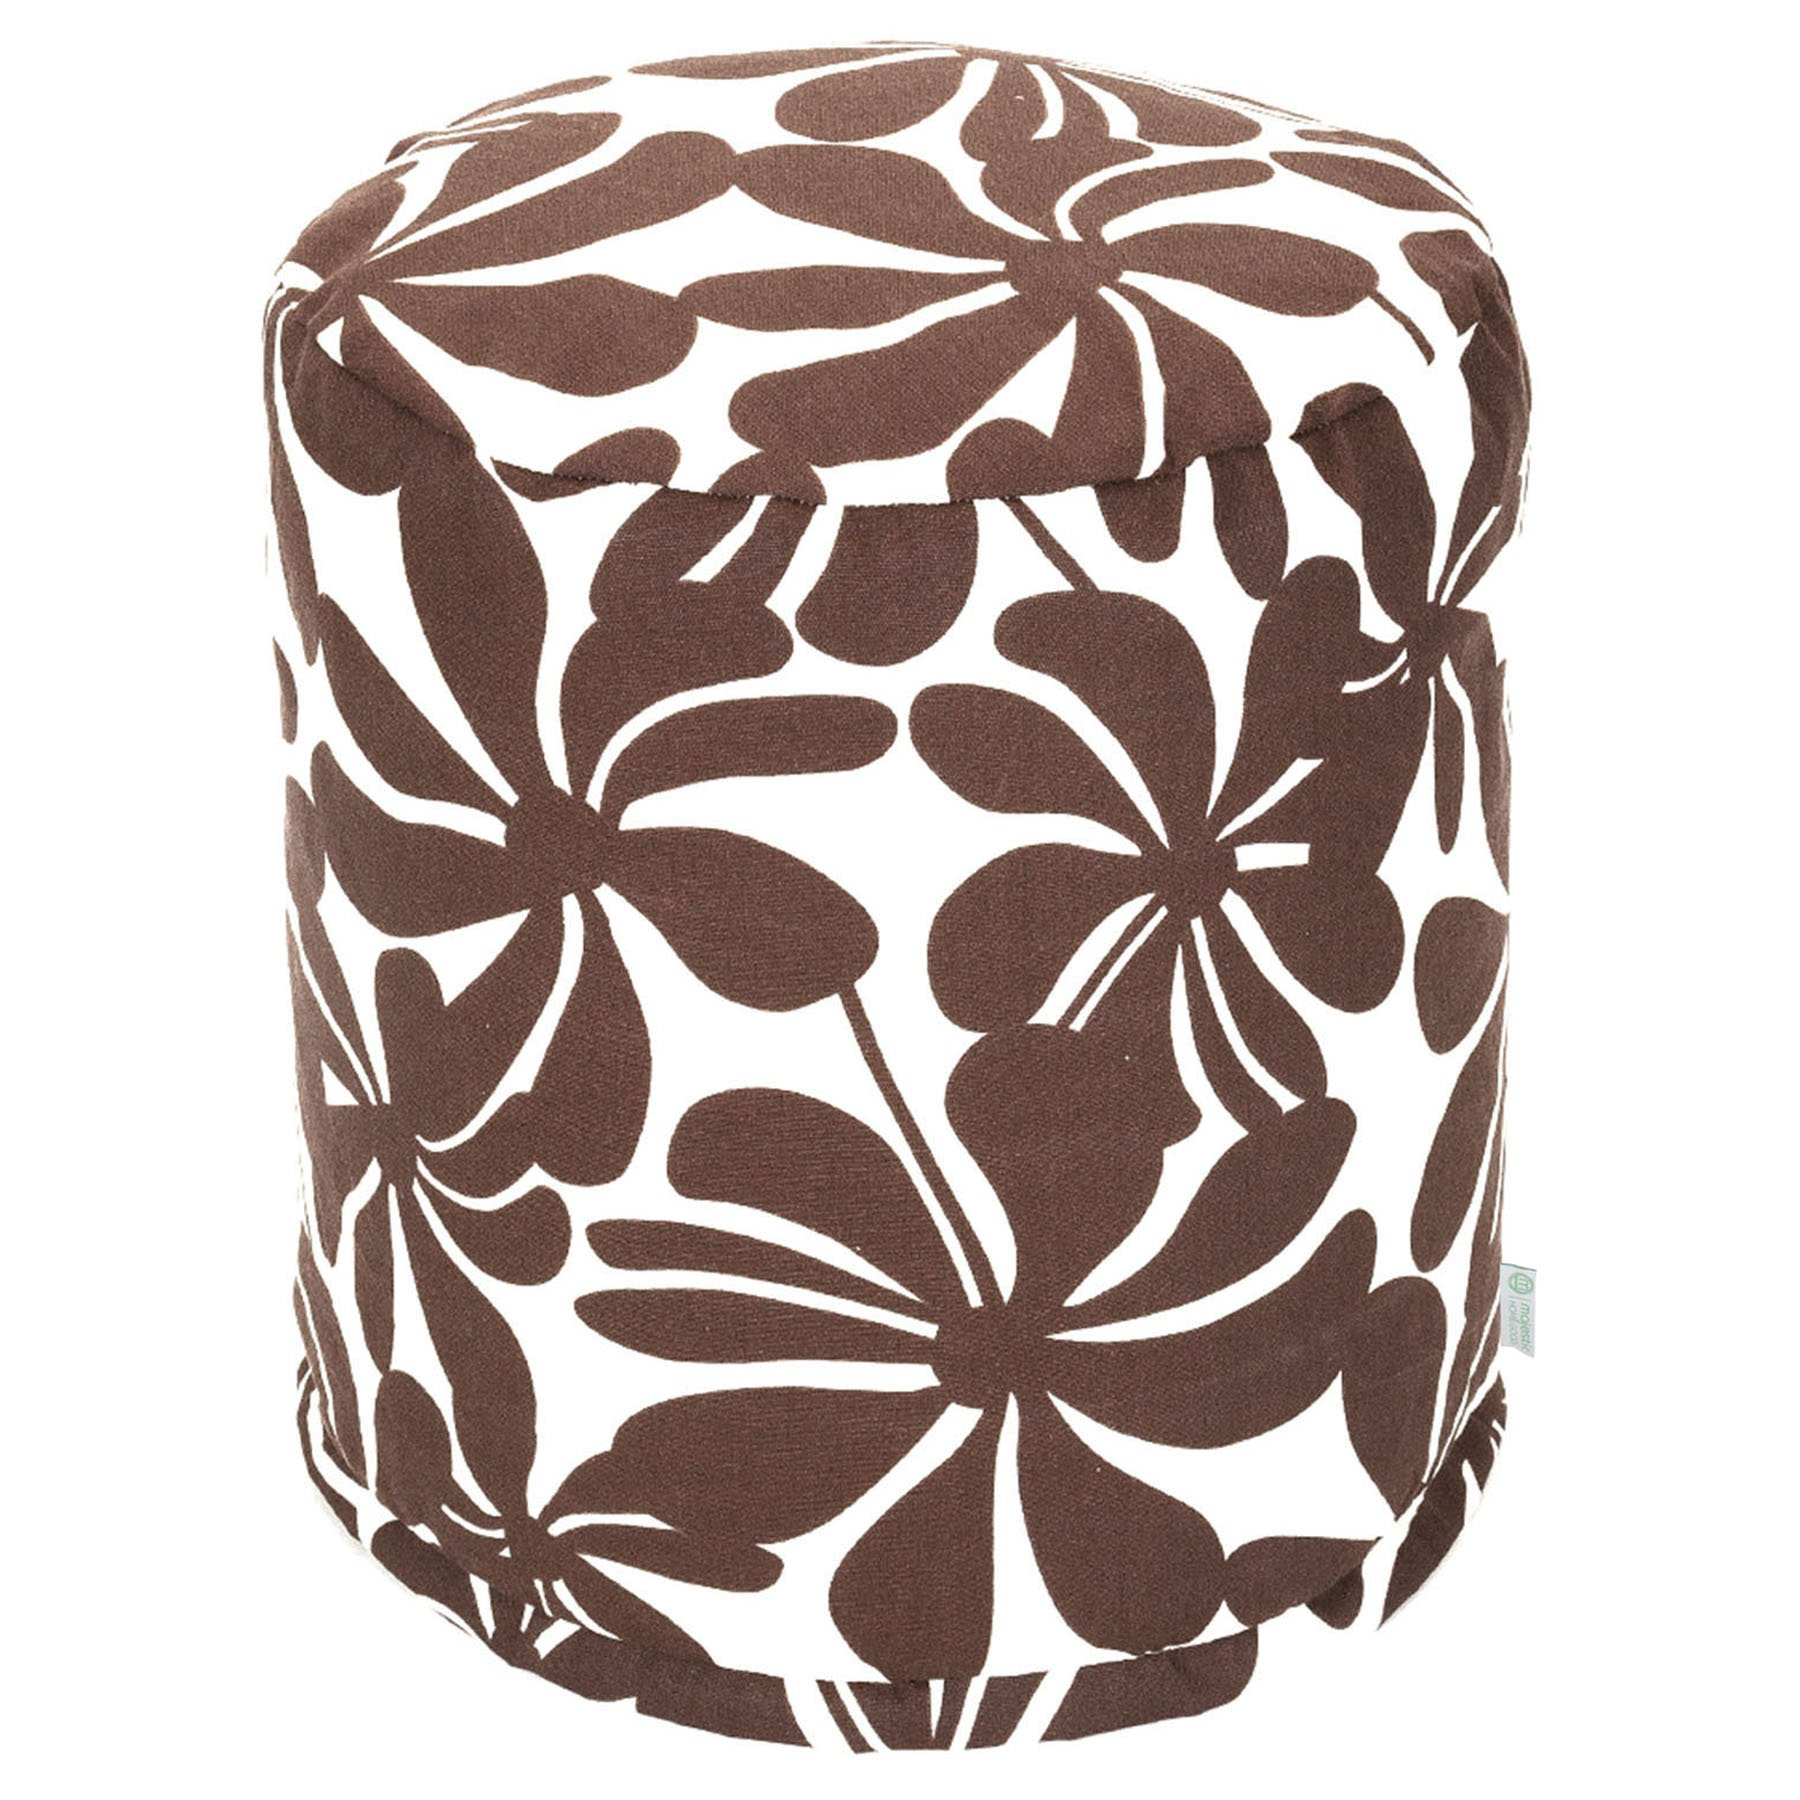 Majestic Home Goods Pouf, Small, Plantation, Chocolate